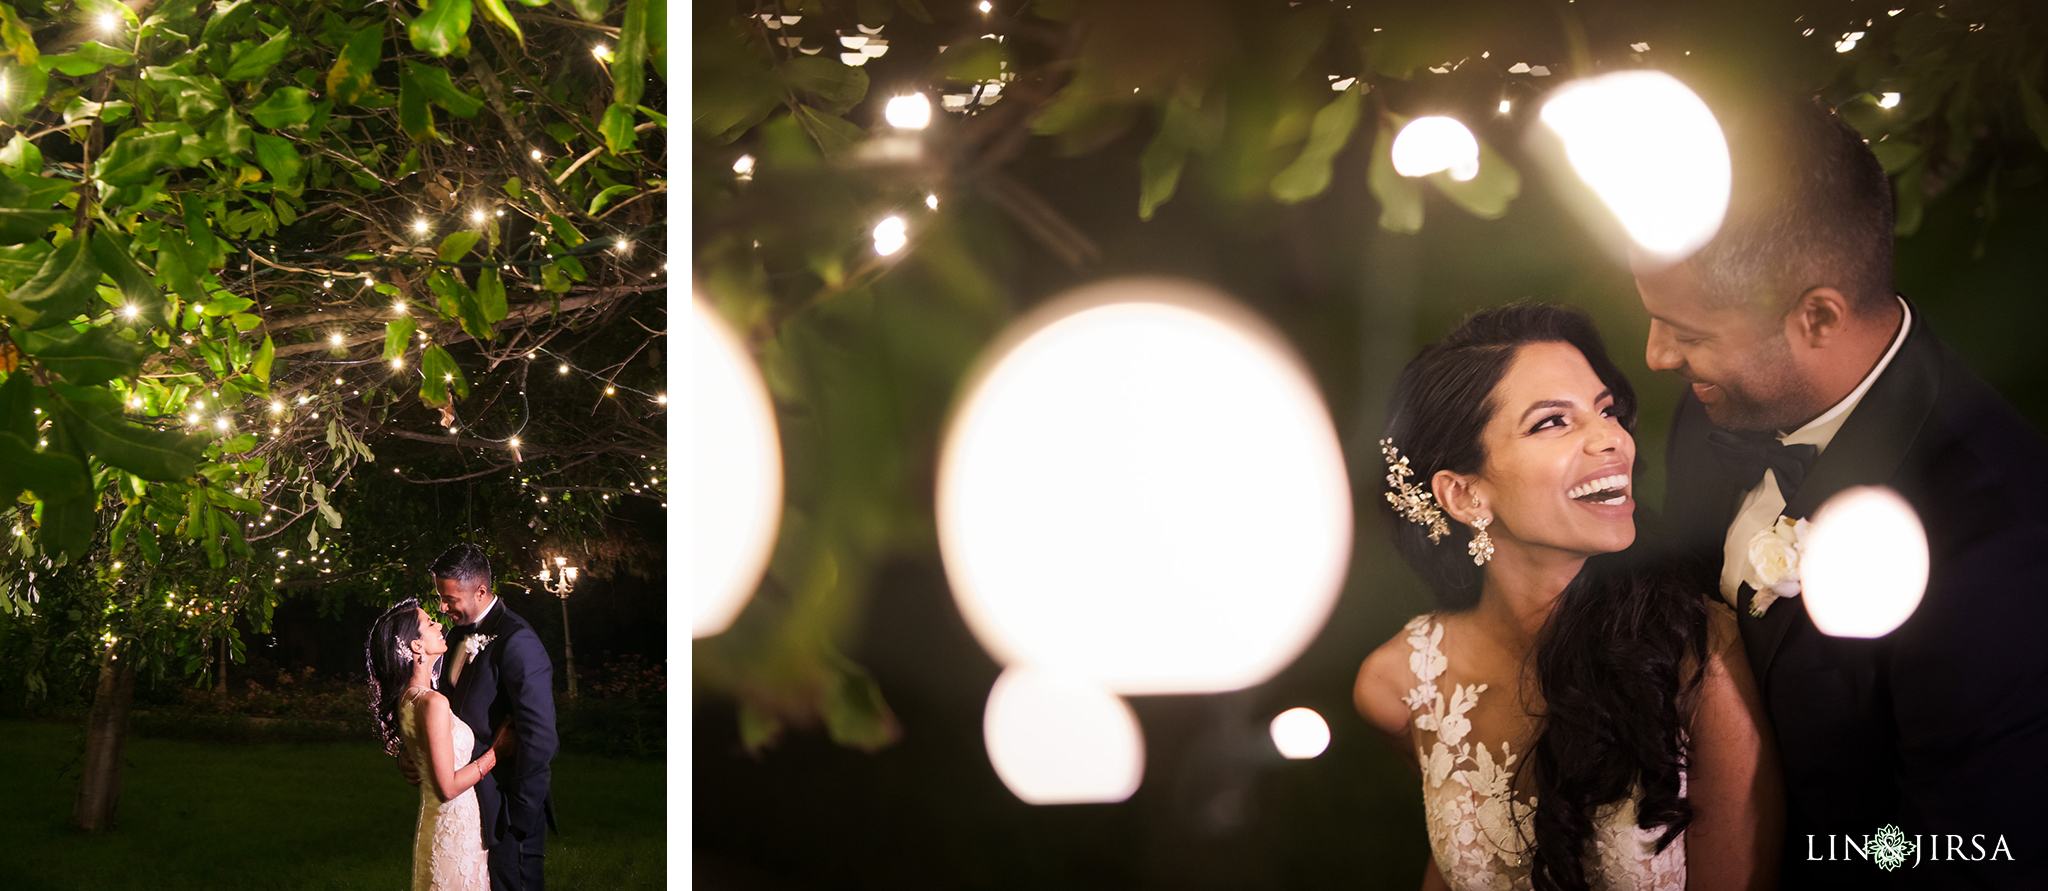 35 Ethereal Open Air Resort Indian Wedding Photography